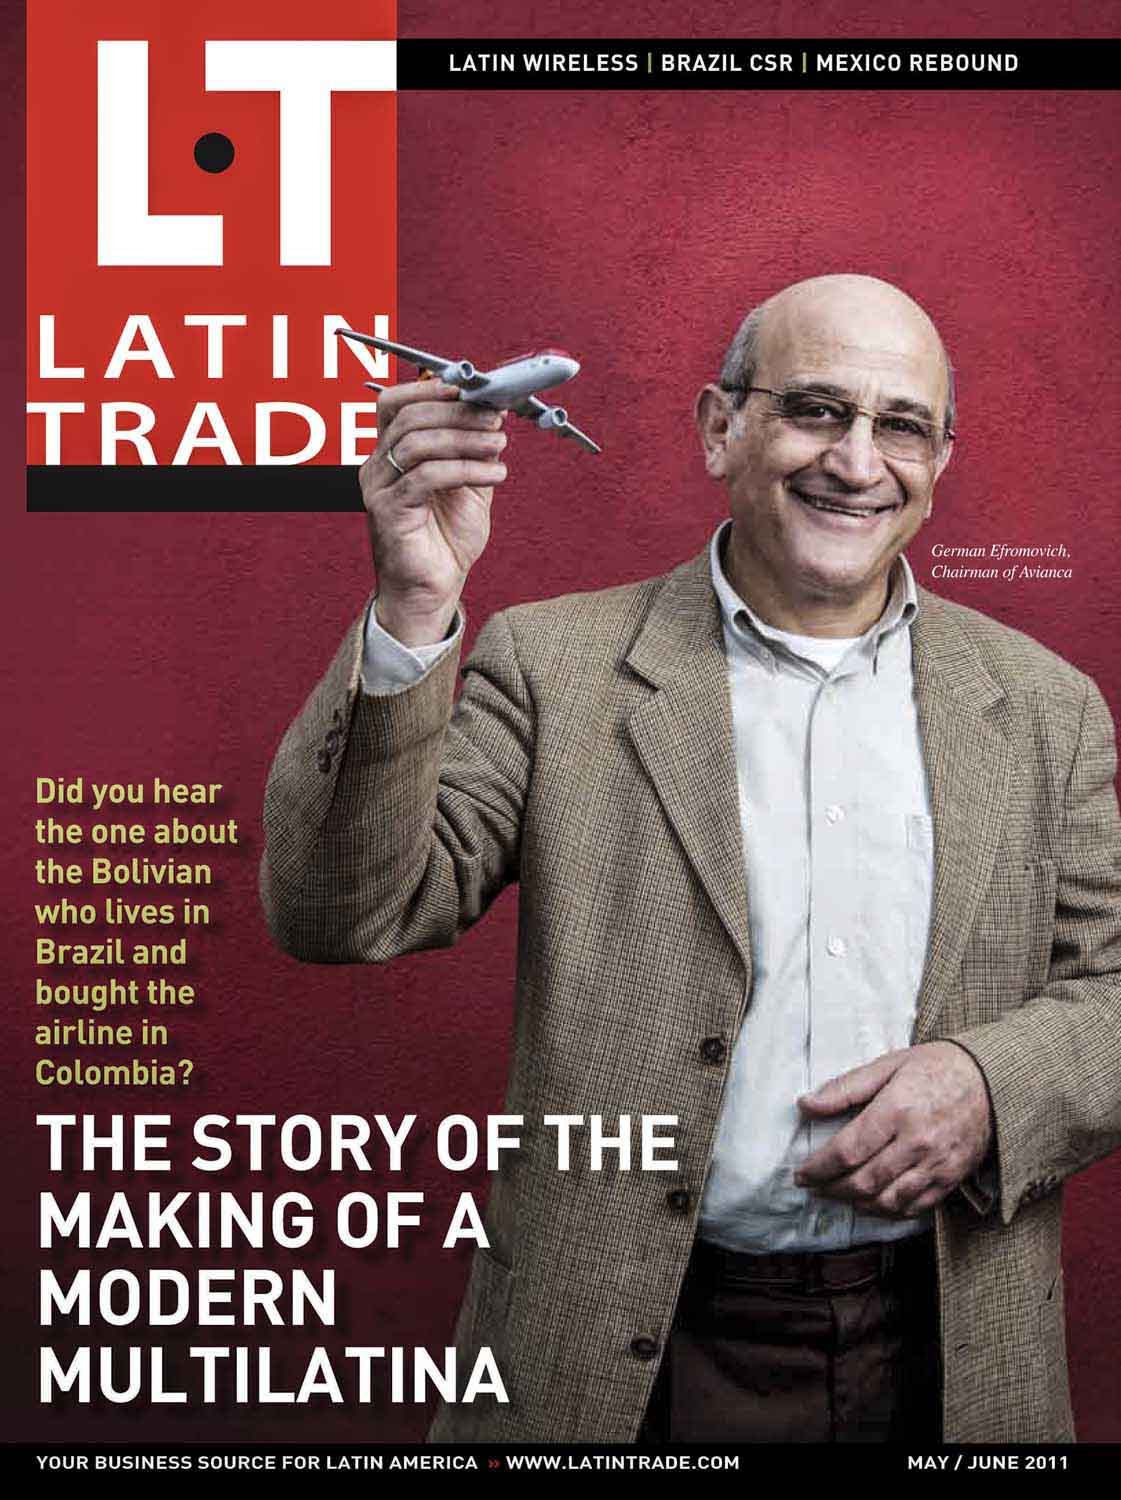 Revista Latin Trade, Efranovich, alemão, CEO da Avianca .